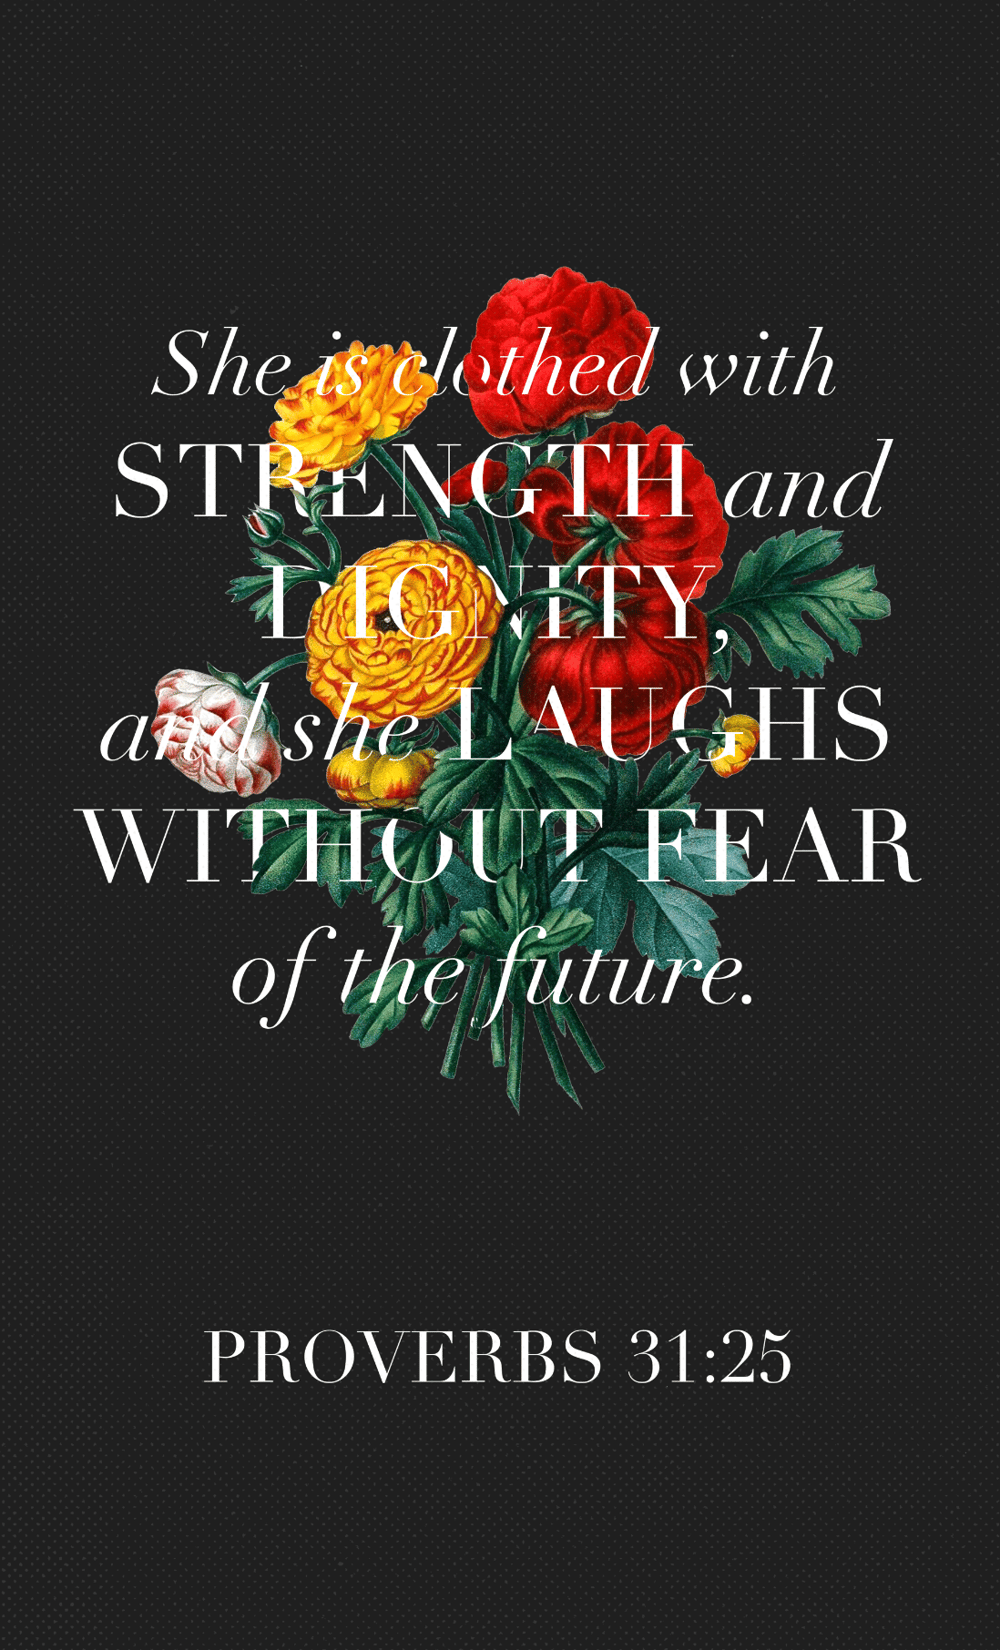 Proverbs 31:25 - image 3 - student project